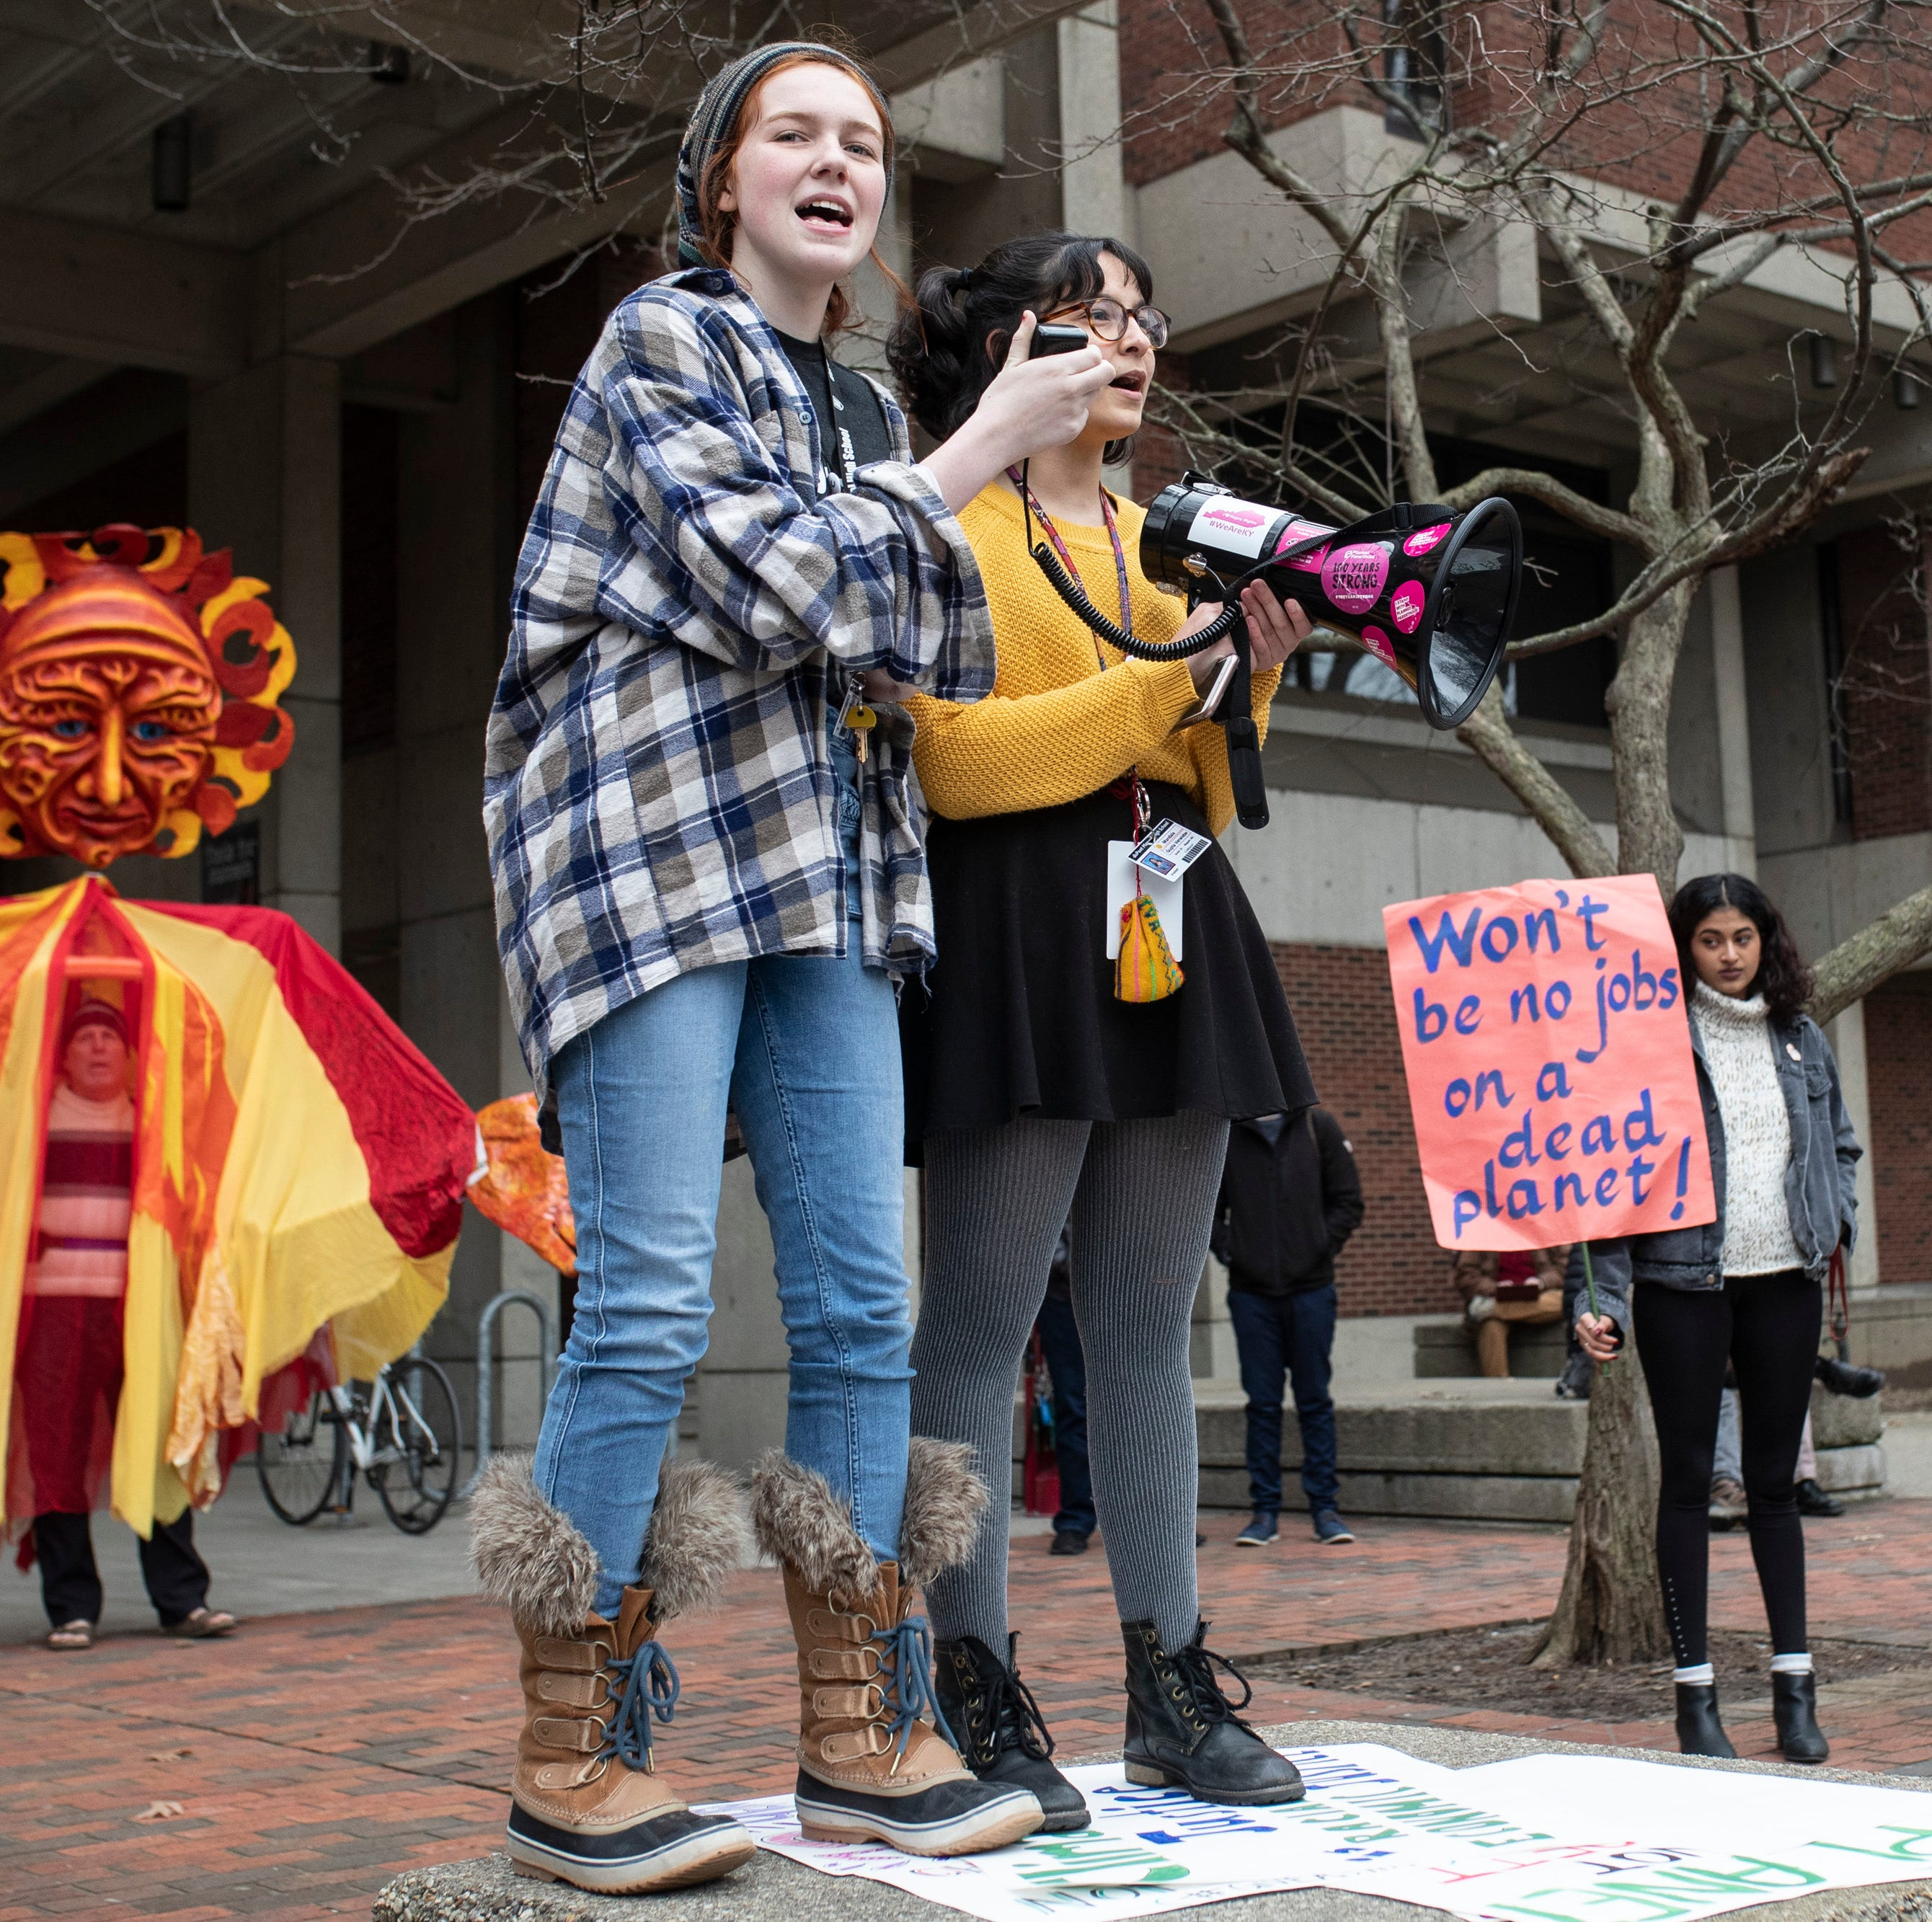 DuPont Manual students Marilyn Buente, left, and Mandala Gupta Verwiebe lead songs during a protest in support of the Green New Deal as well as climate and social justice on the U of L campus Friday. Feb. 22, 2019